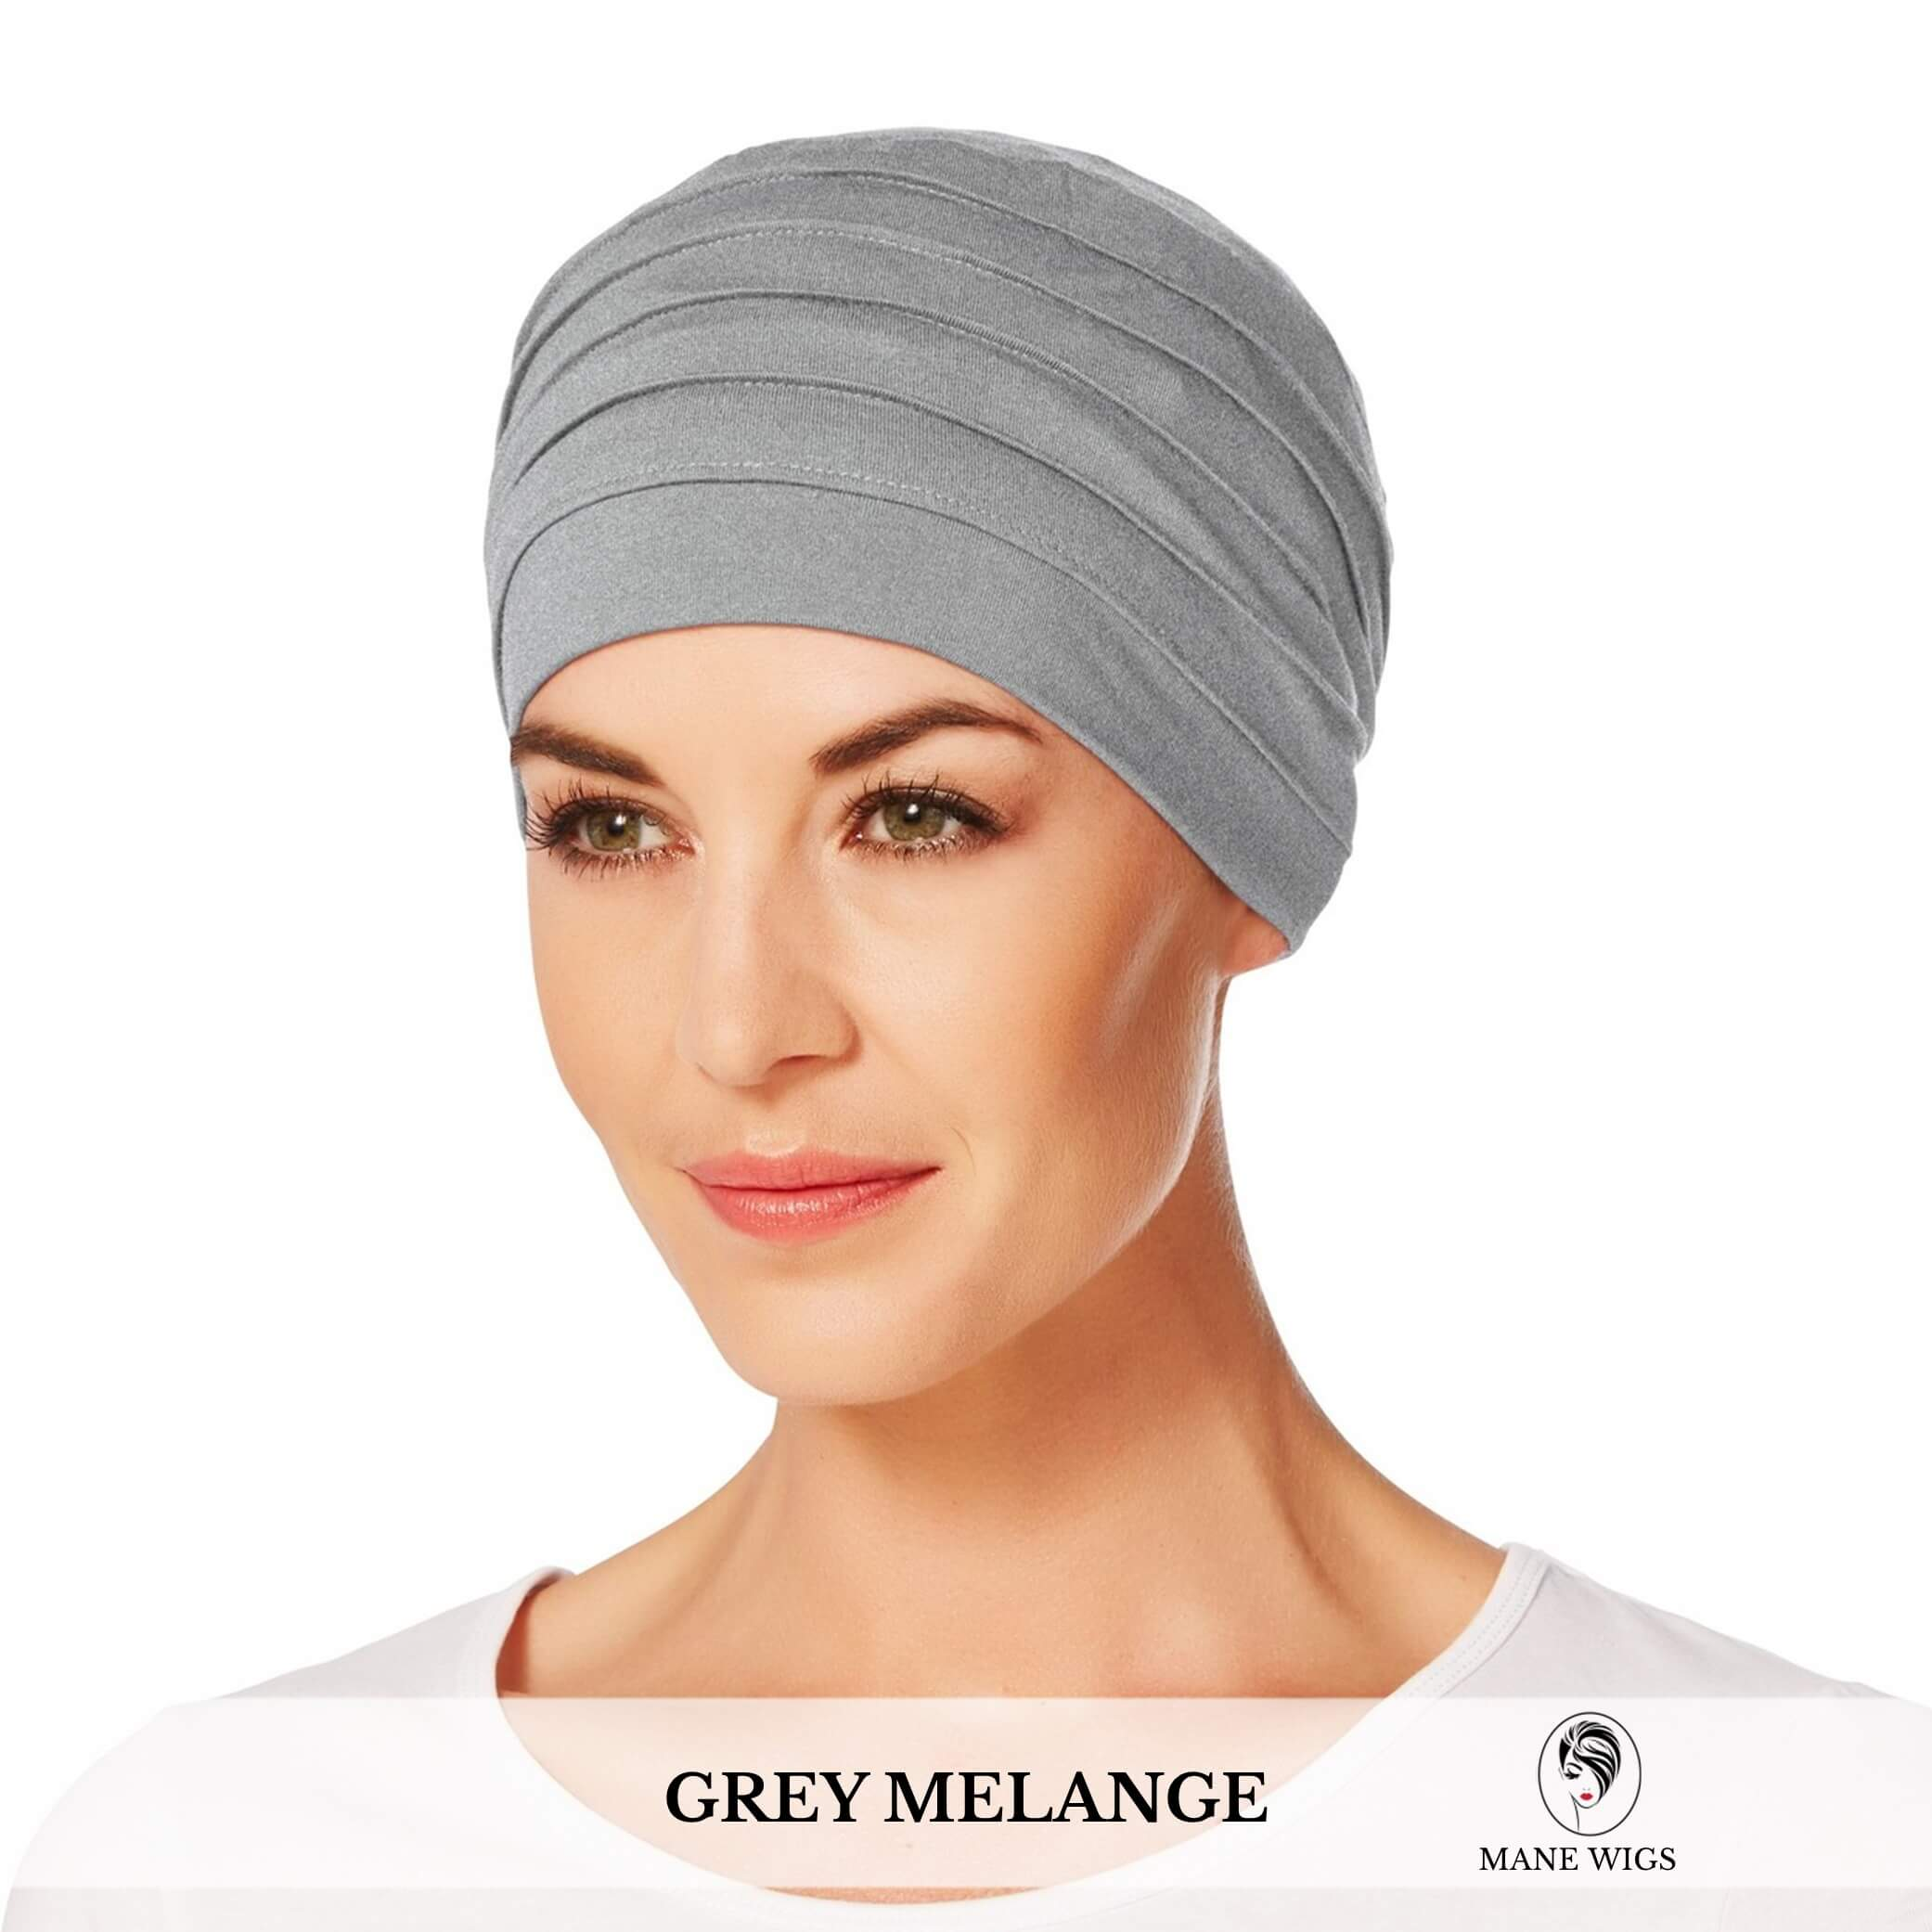 Christine Headwear Yoga Turban 169-Grey Melange